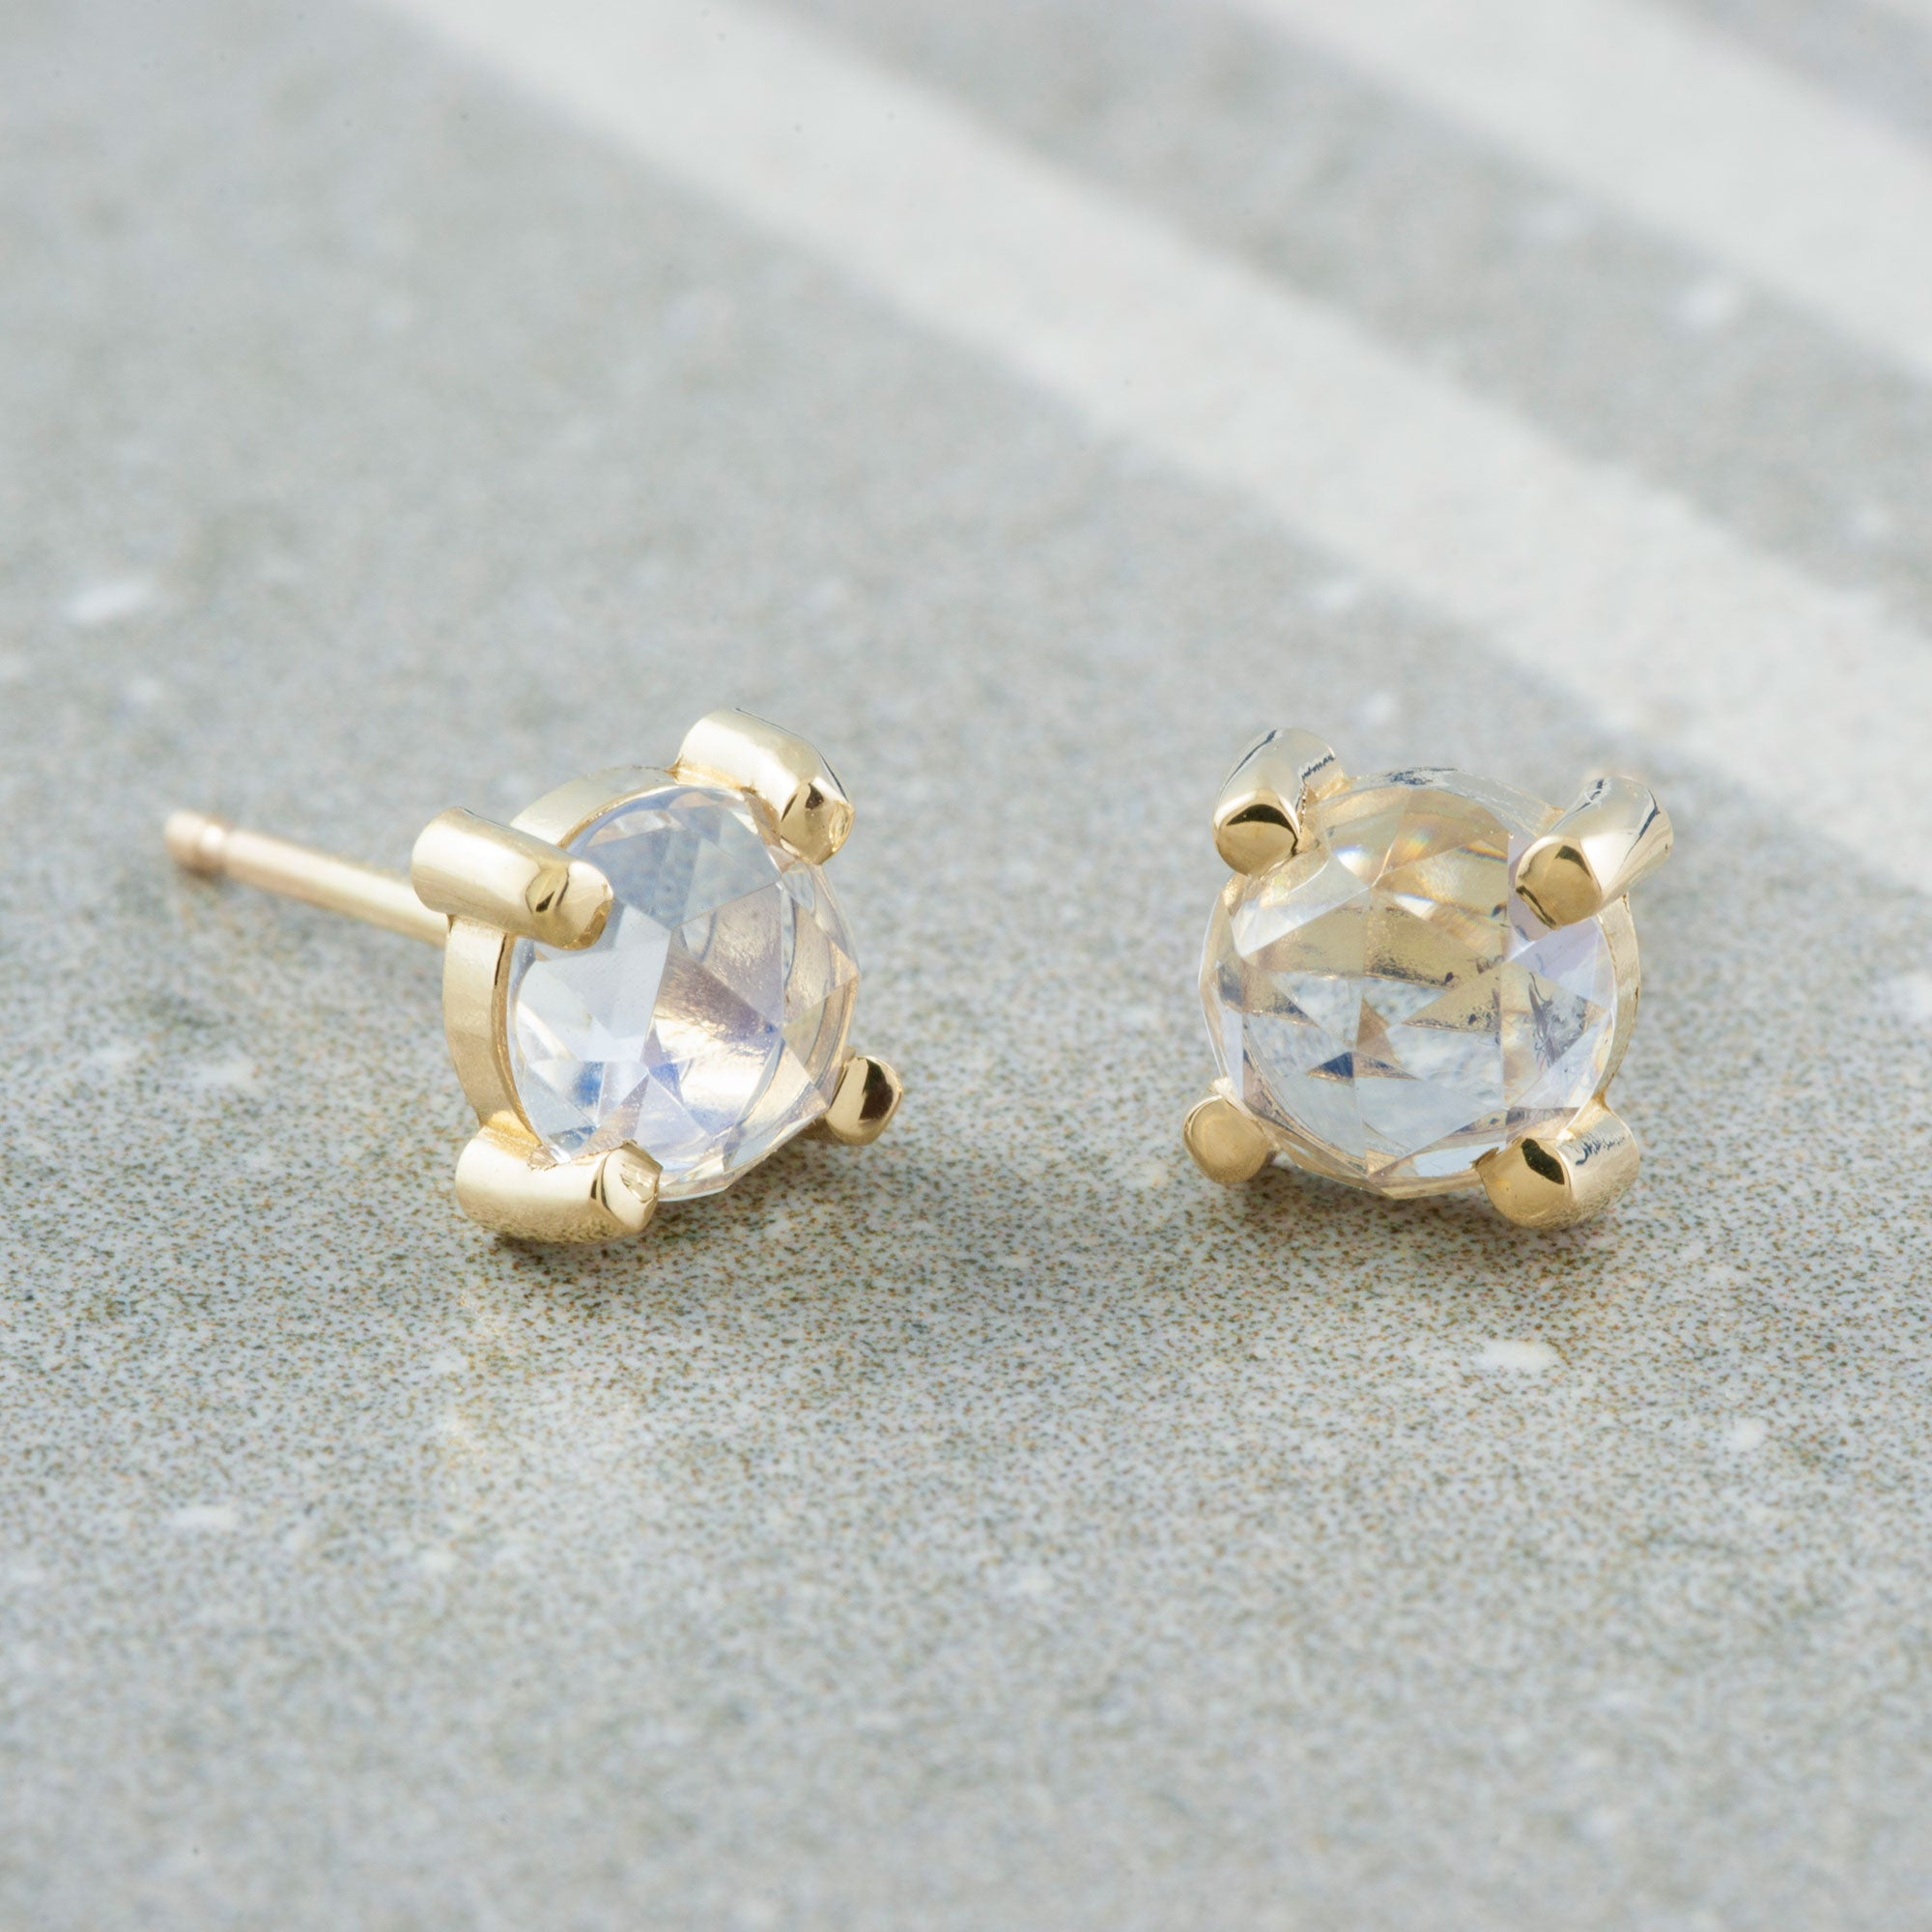 Rose Cut Moonstone Studs Gemstone Earrings - Era Design Vancouver